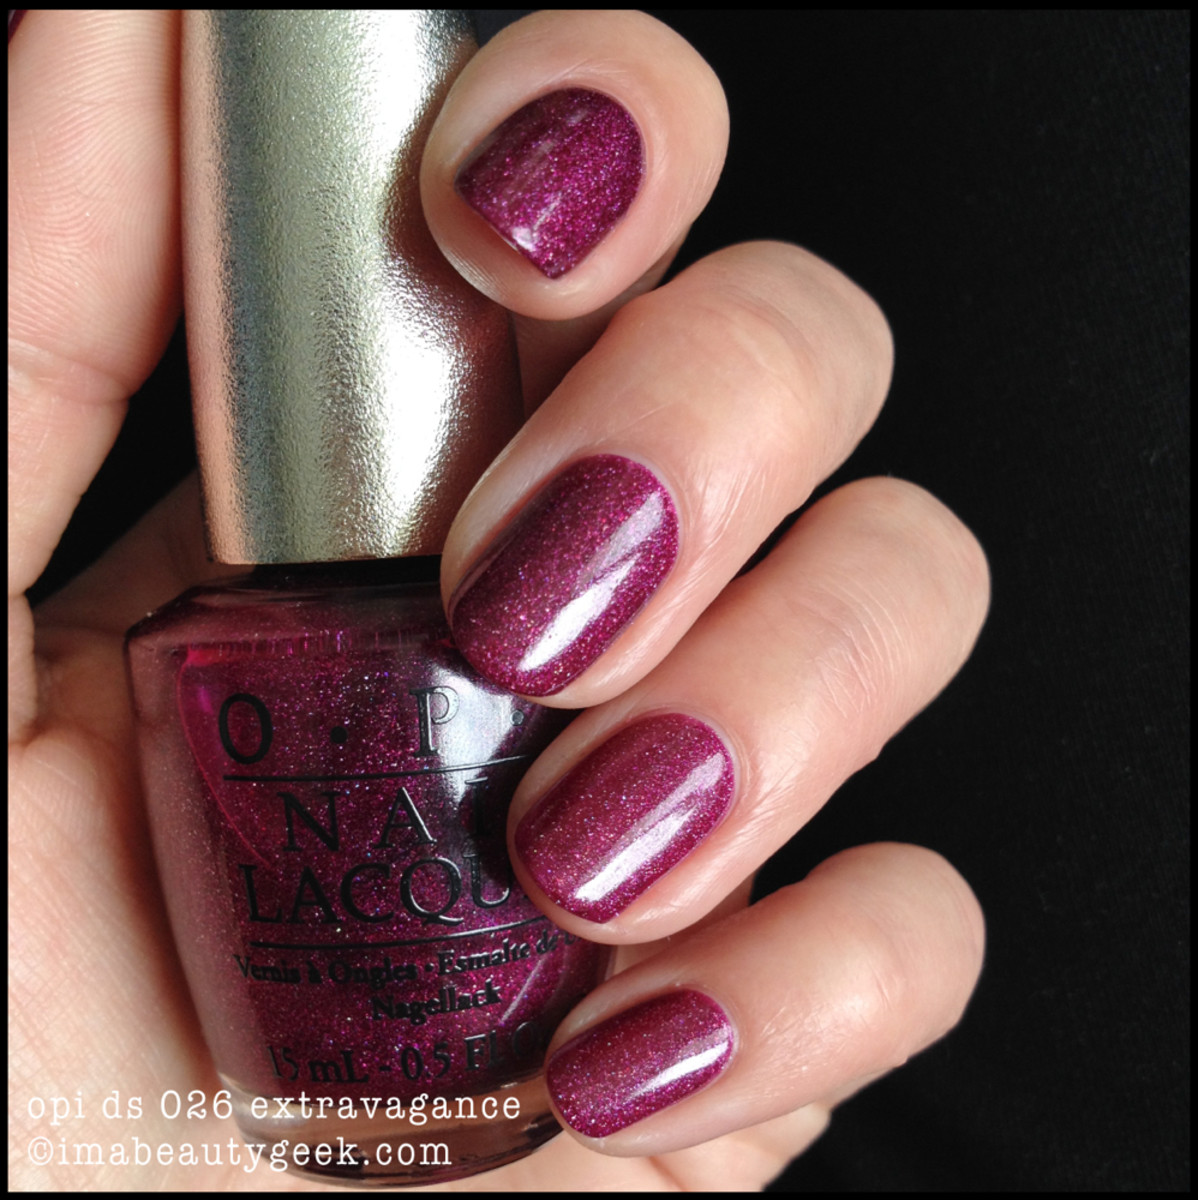 OPI DS Extravagance 026